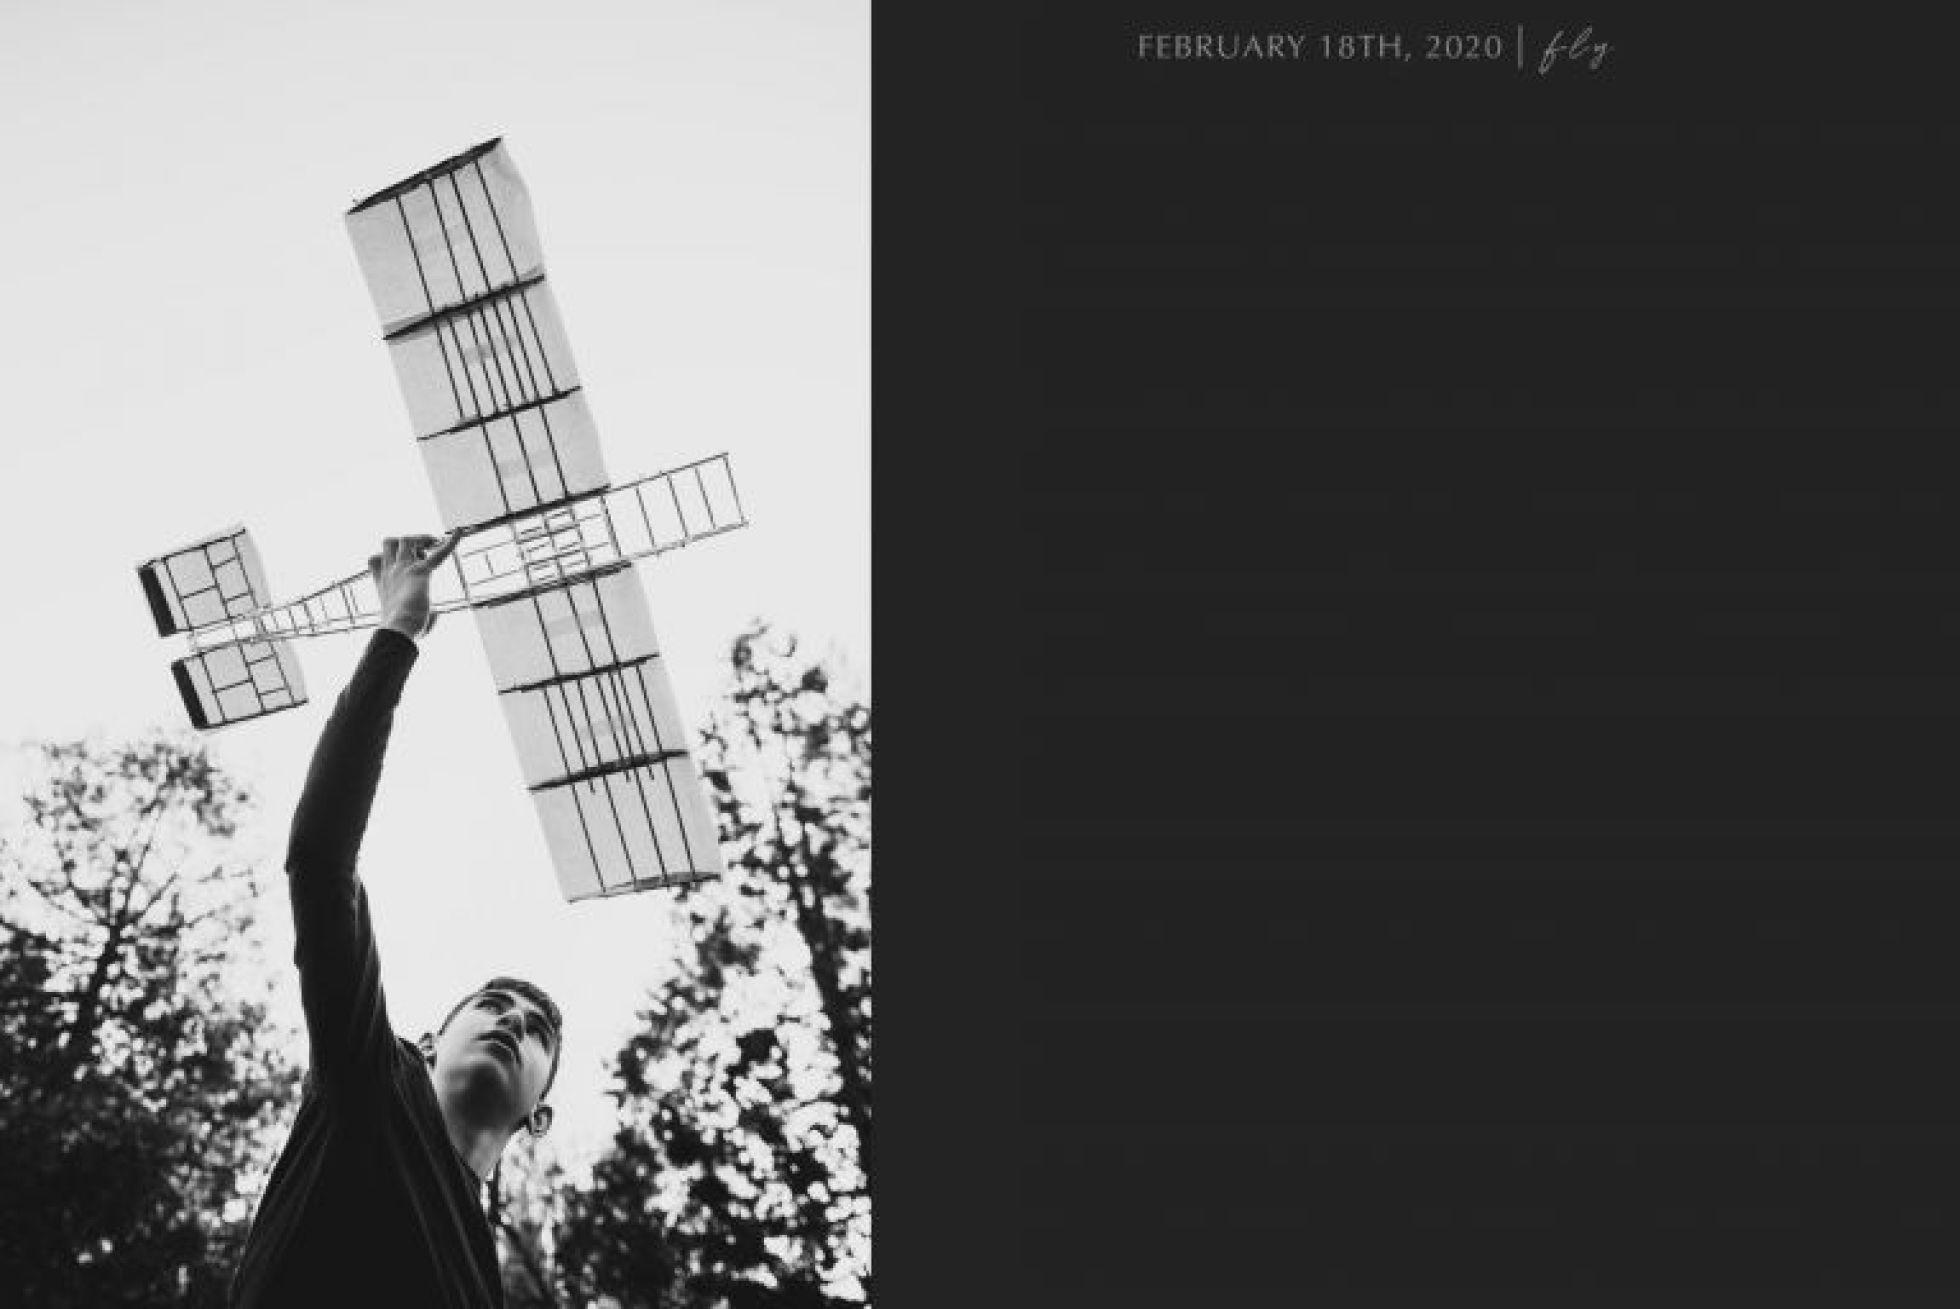 black and white photo of boy lifting a homemade airplane in the air